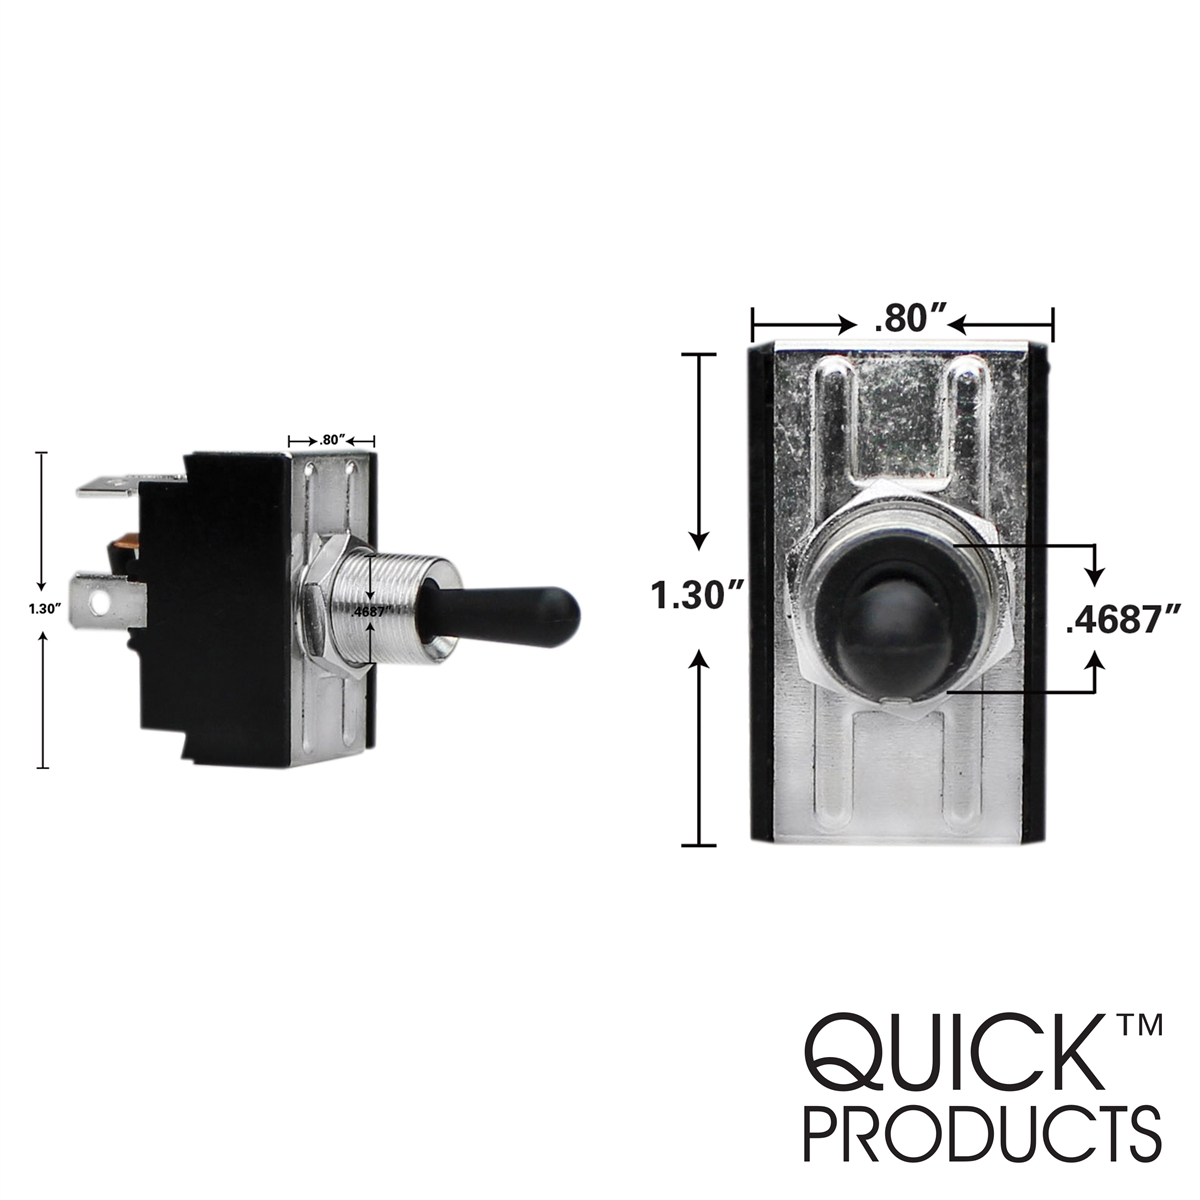 Quick Products JQ-OS Replacement Operating Switch